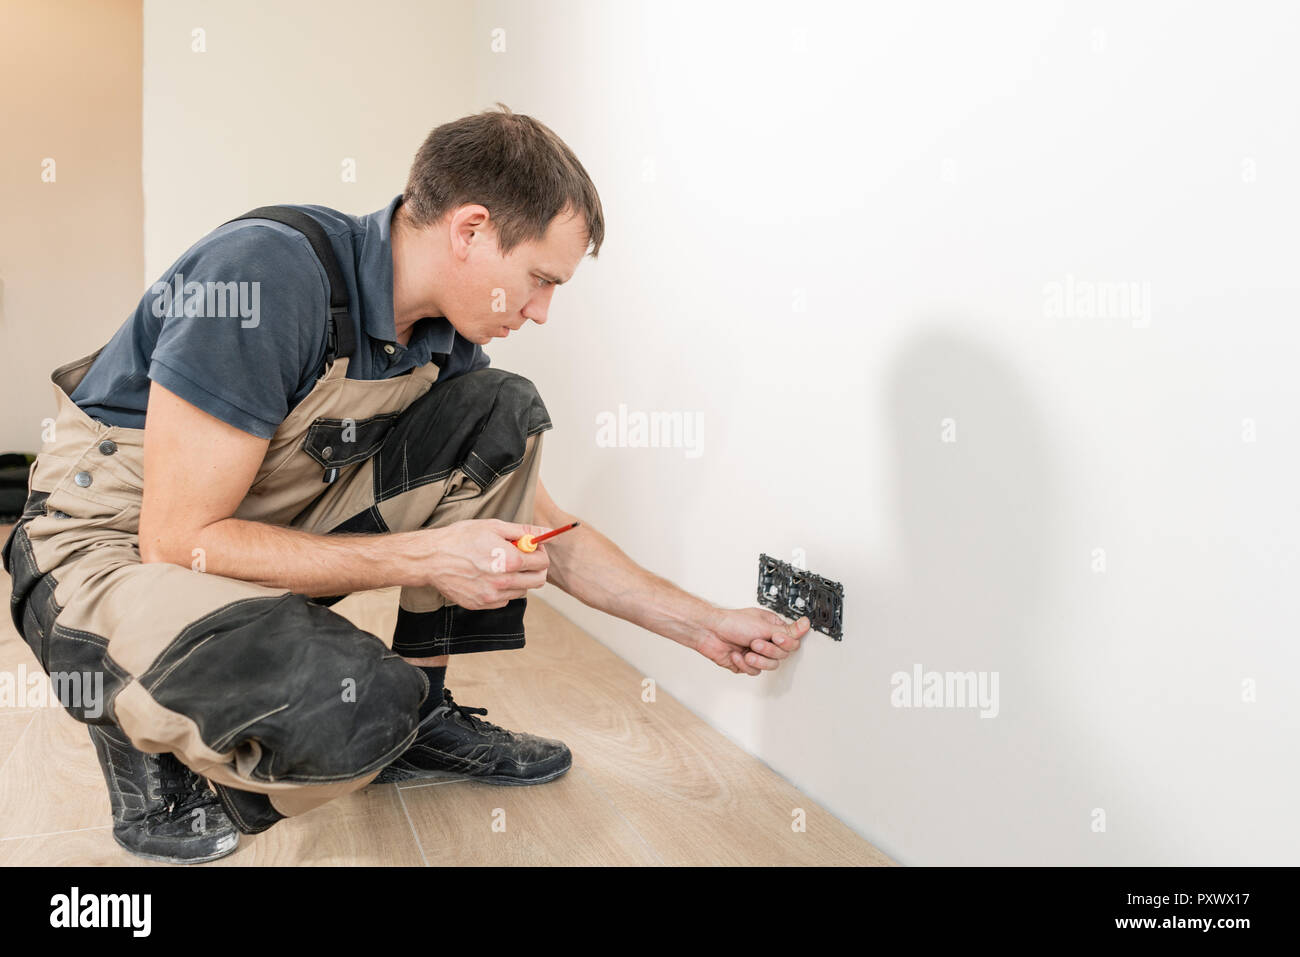 One Electrician Worker At Wiring Cable And Light Switch Or Power A With Wall Outlet Socket Installation Work